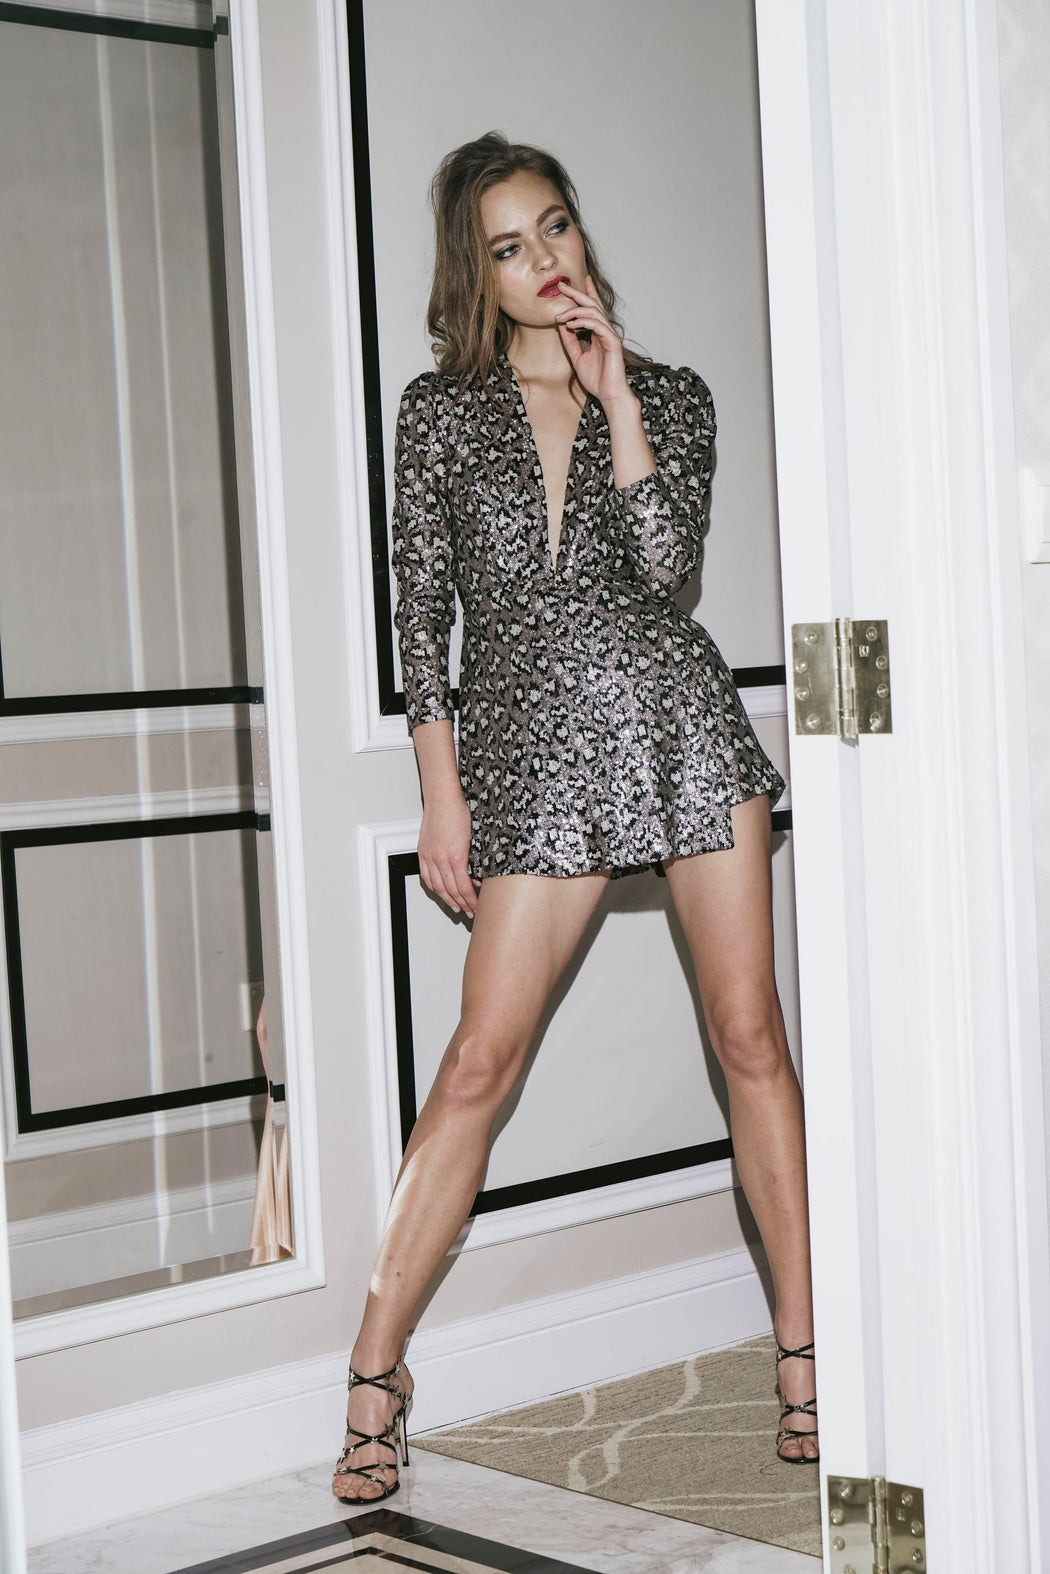 Samantha Leopard Sequin Romper - SAU LEE